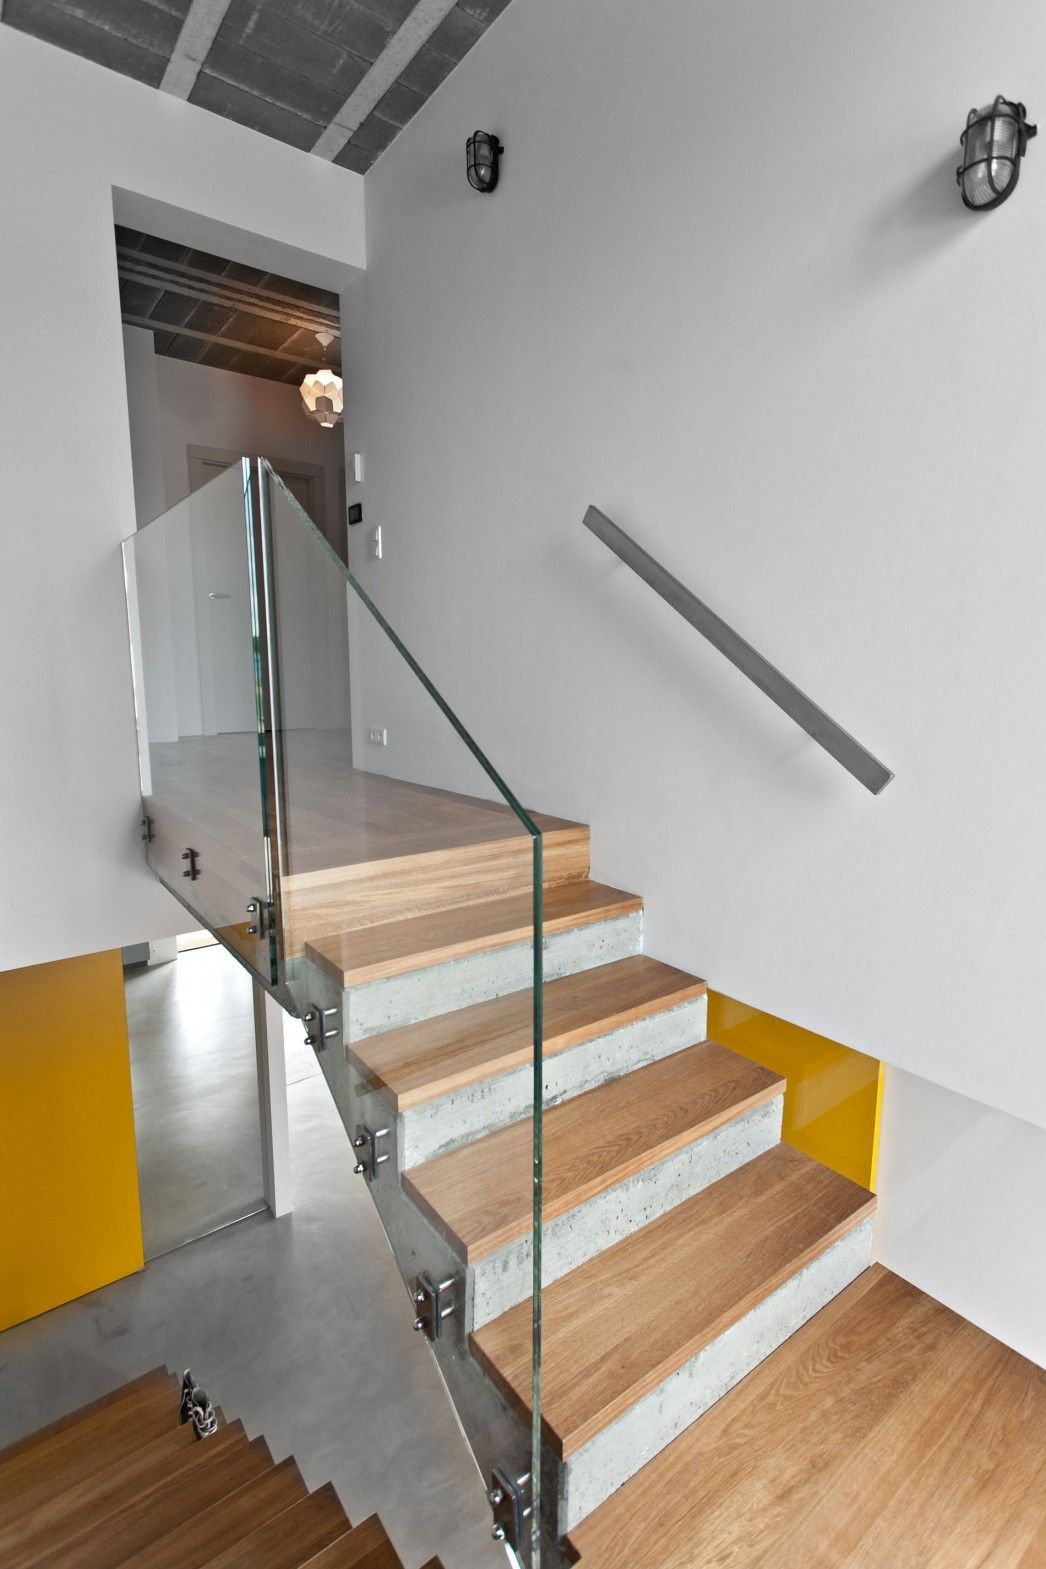 Concrete Staircase With Wooden Steps And Glass Railing Panels Of Beam Block House Design Ideas Modern Gla Concrete Staircase Stairs Design Stair Railing Design